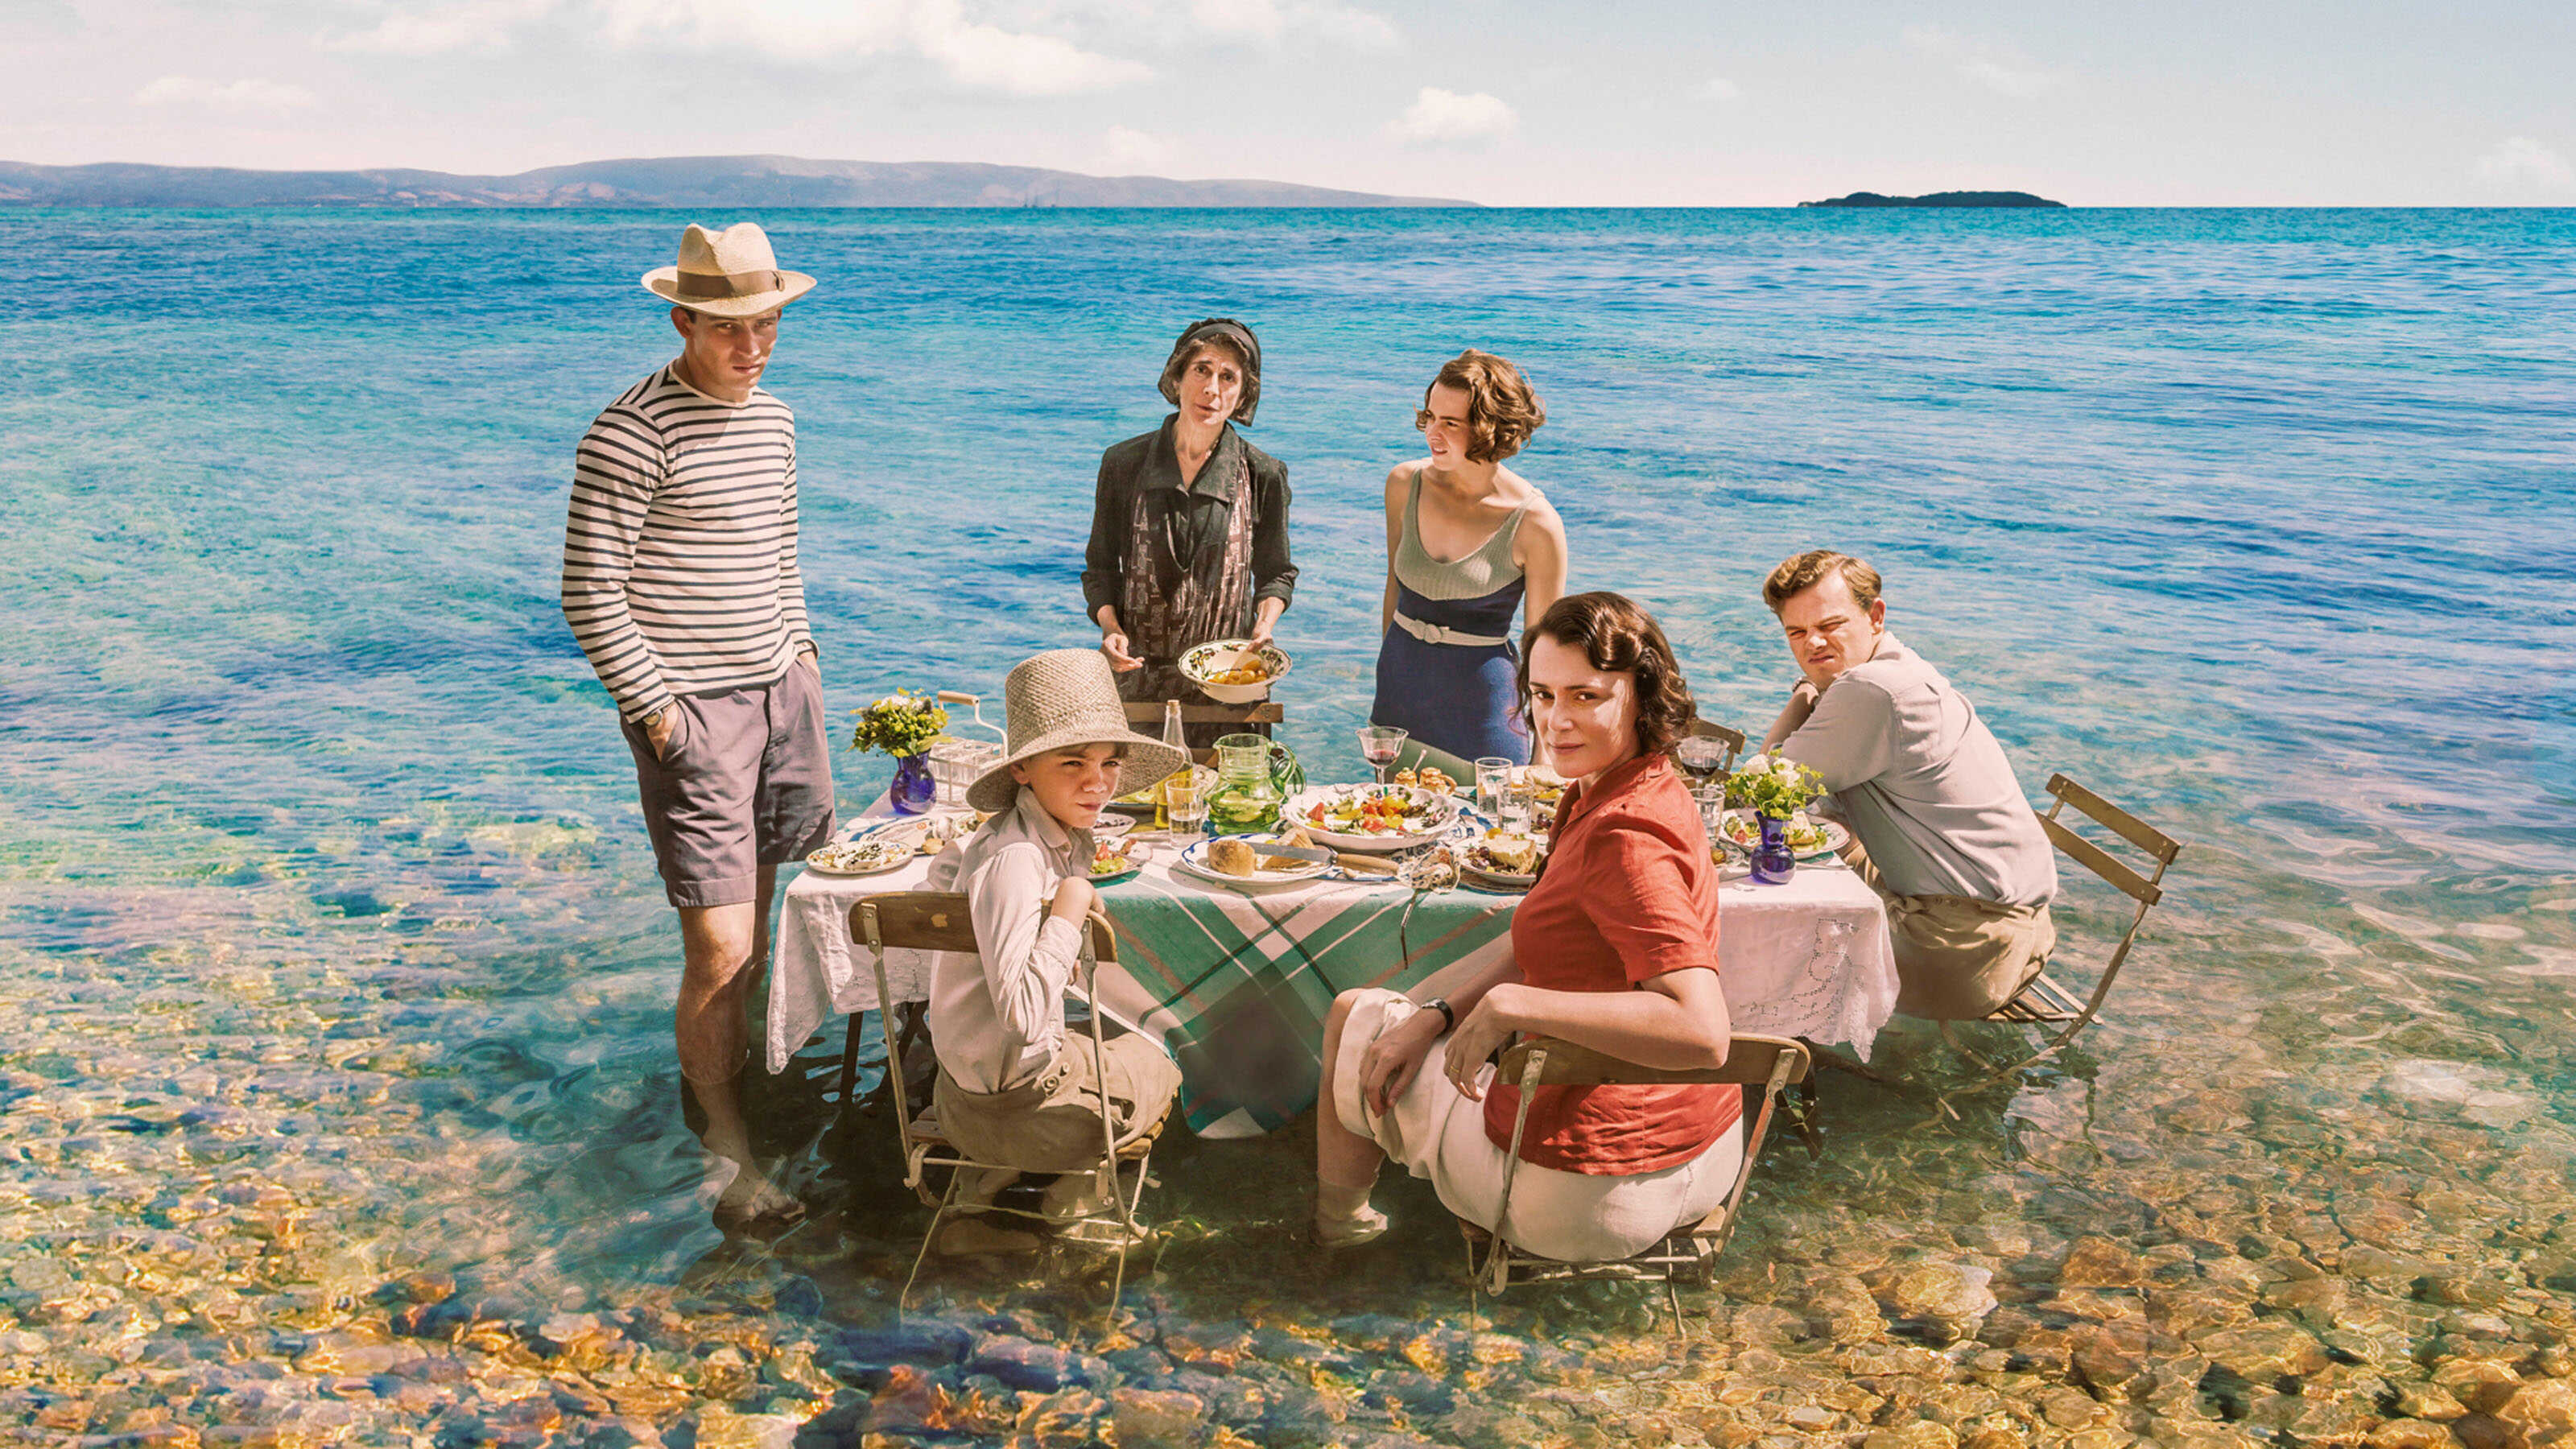 The Durrells in Corfu on MASTERPIECE on PBS